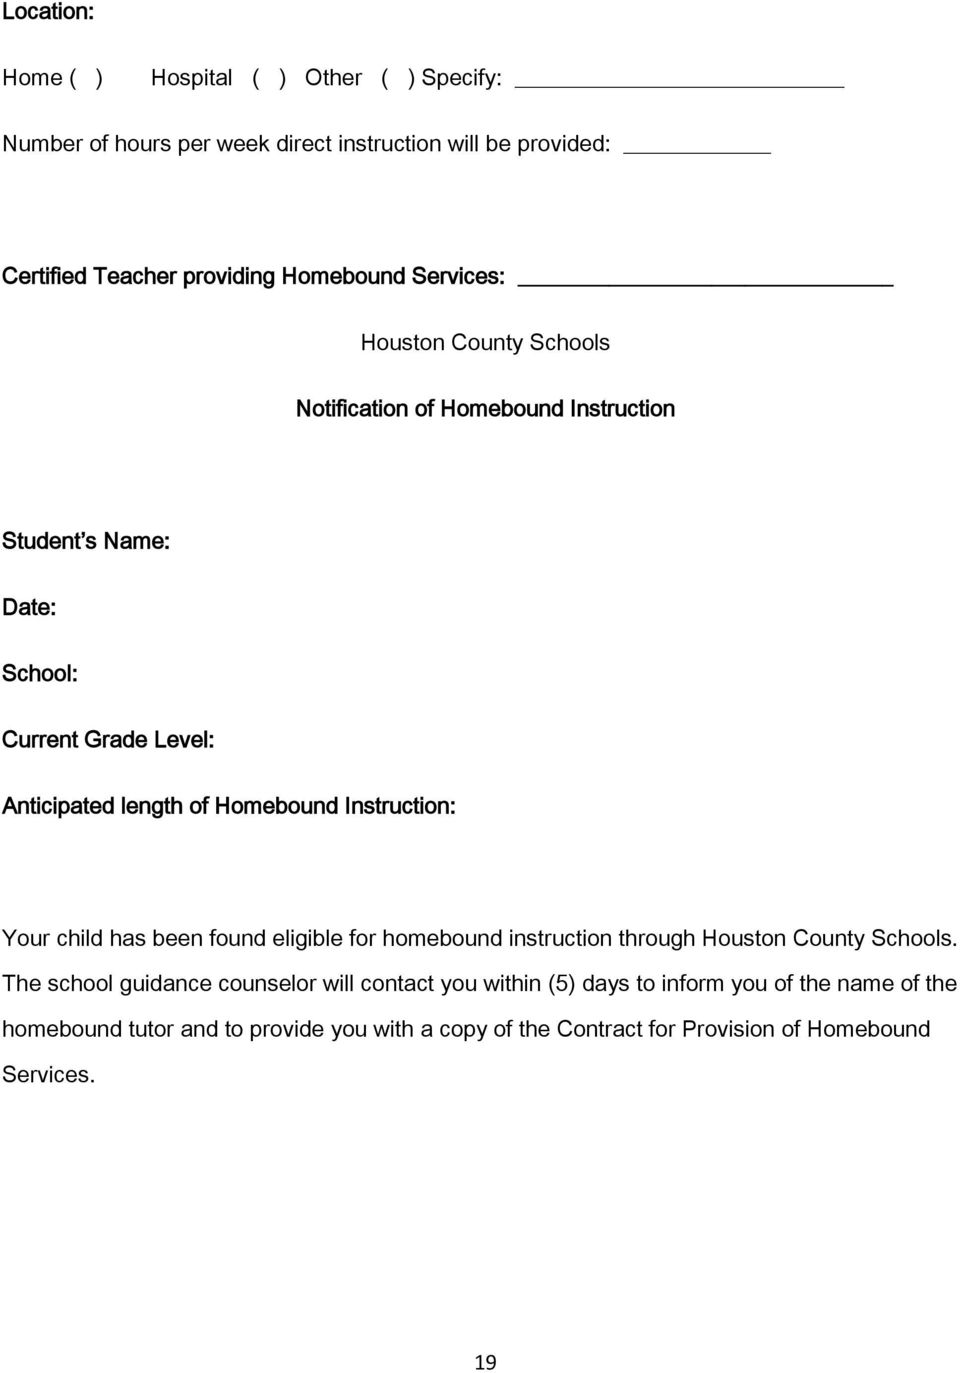 Homebound Instruction: Your child has been found eligible for homebound instruction through Houston County Schools.